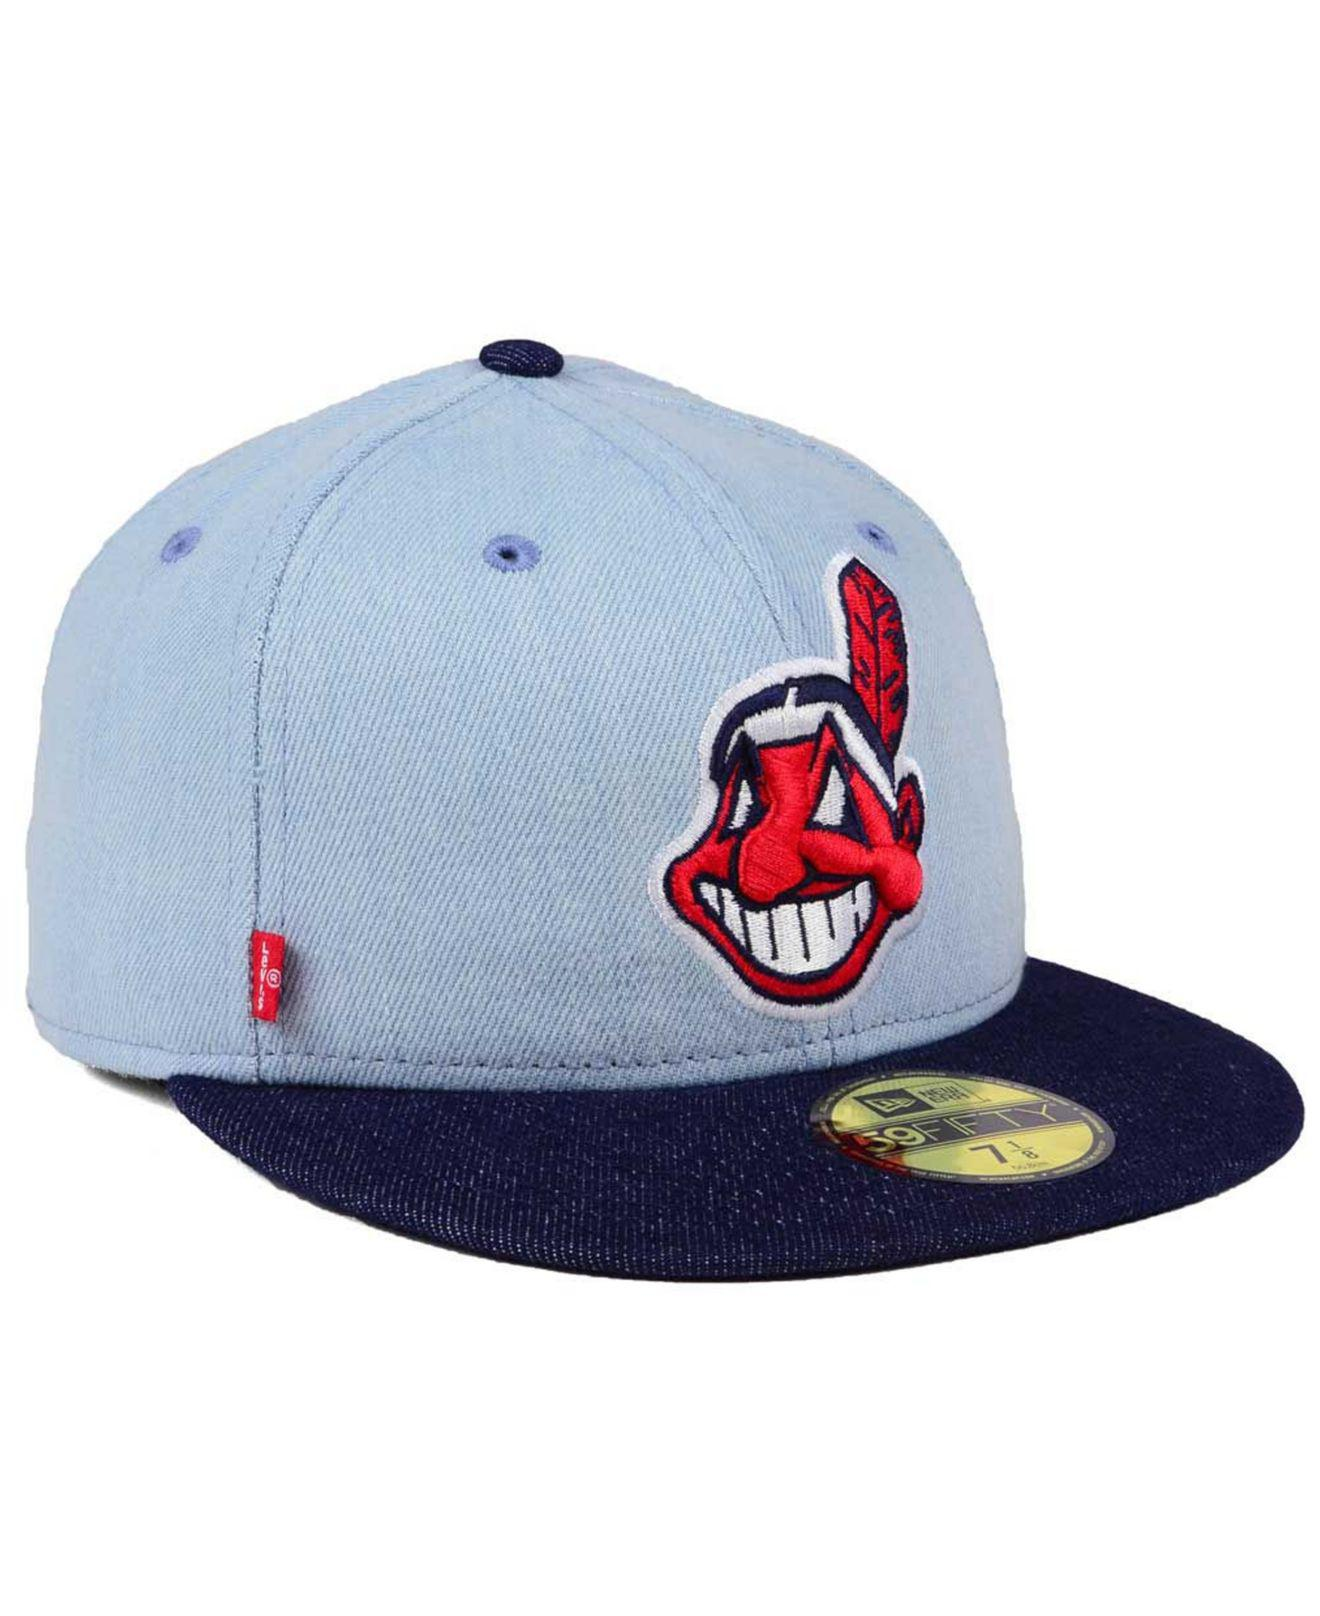 usa lyst ktz cleveland indians x levi 59fifty fitted cap in blue for men  e693f 96e25 120986359189